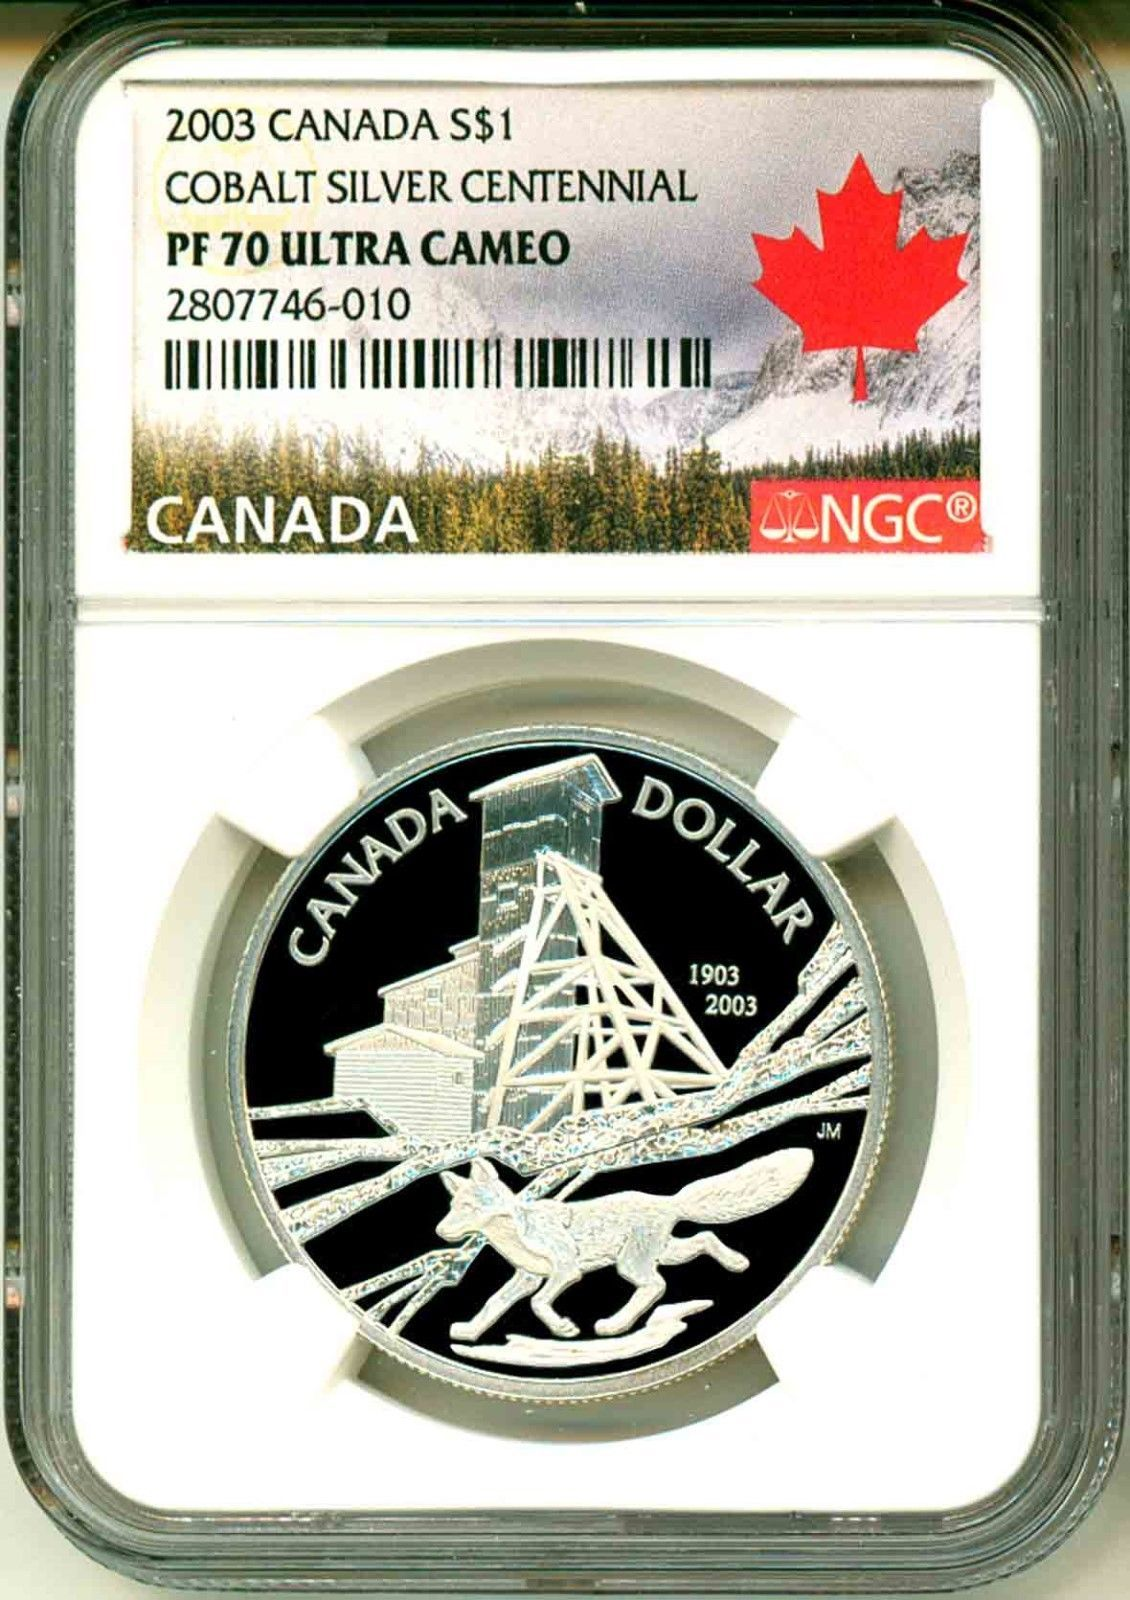 0667e7351f Item specifics Grade  PR 70 Denomination   1 Certification  NGC  Country Region of Manufacture  Canada Year  2003 Certification.